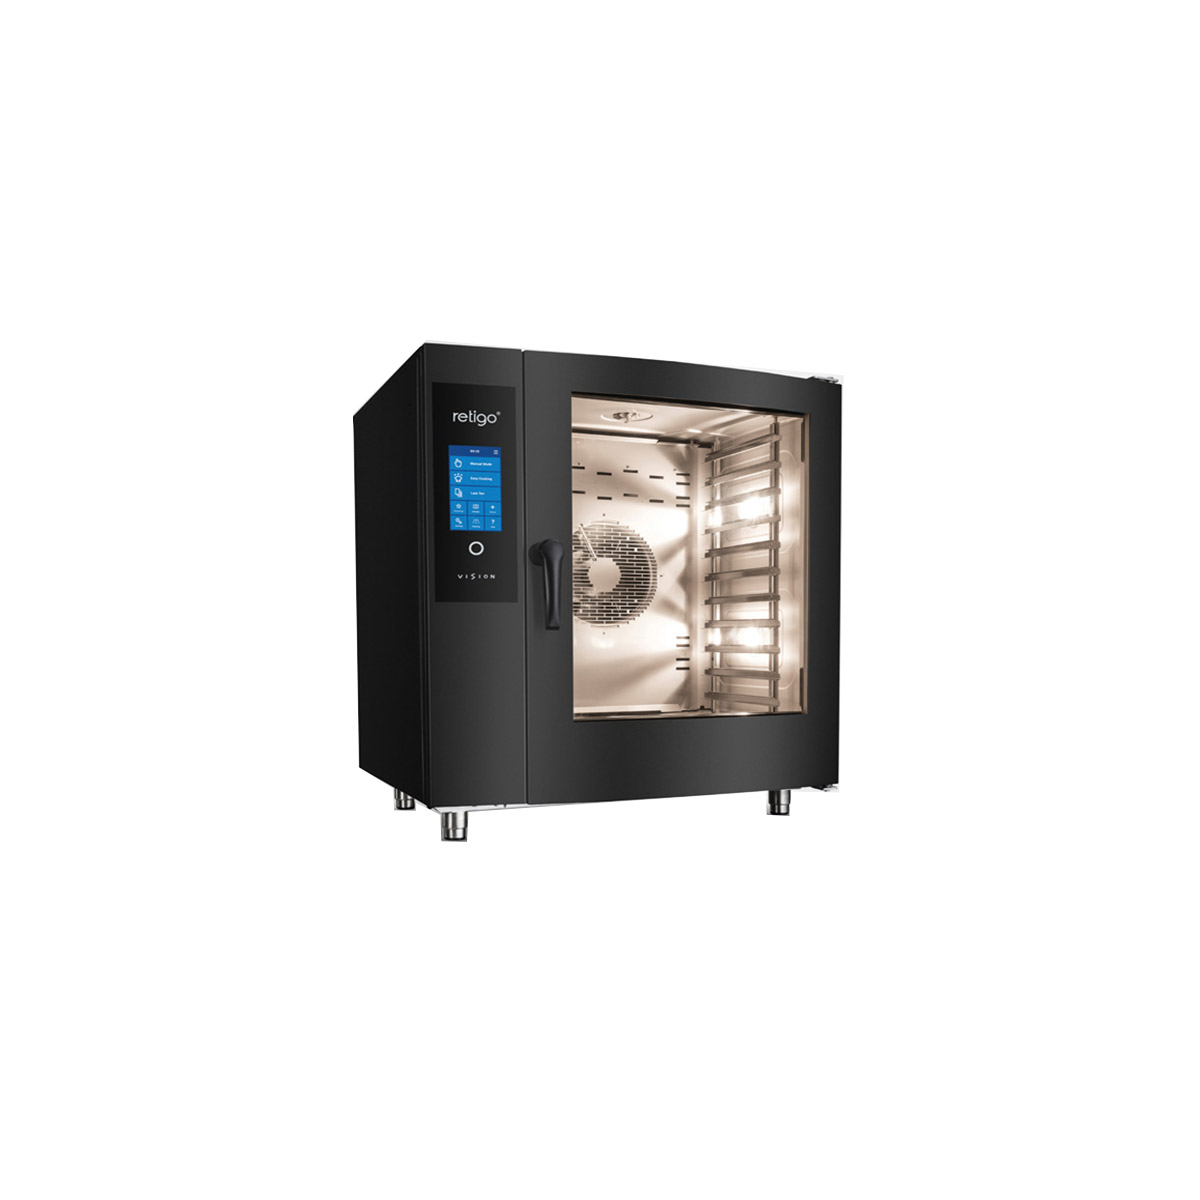 Retigo Blue Vision 6x Grid Combination Oven Limited Black Edition B611b